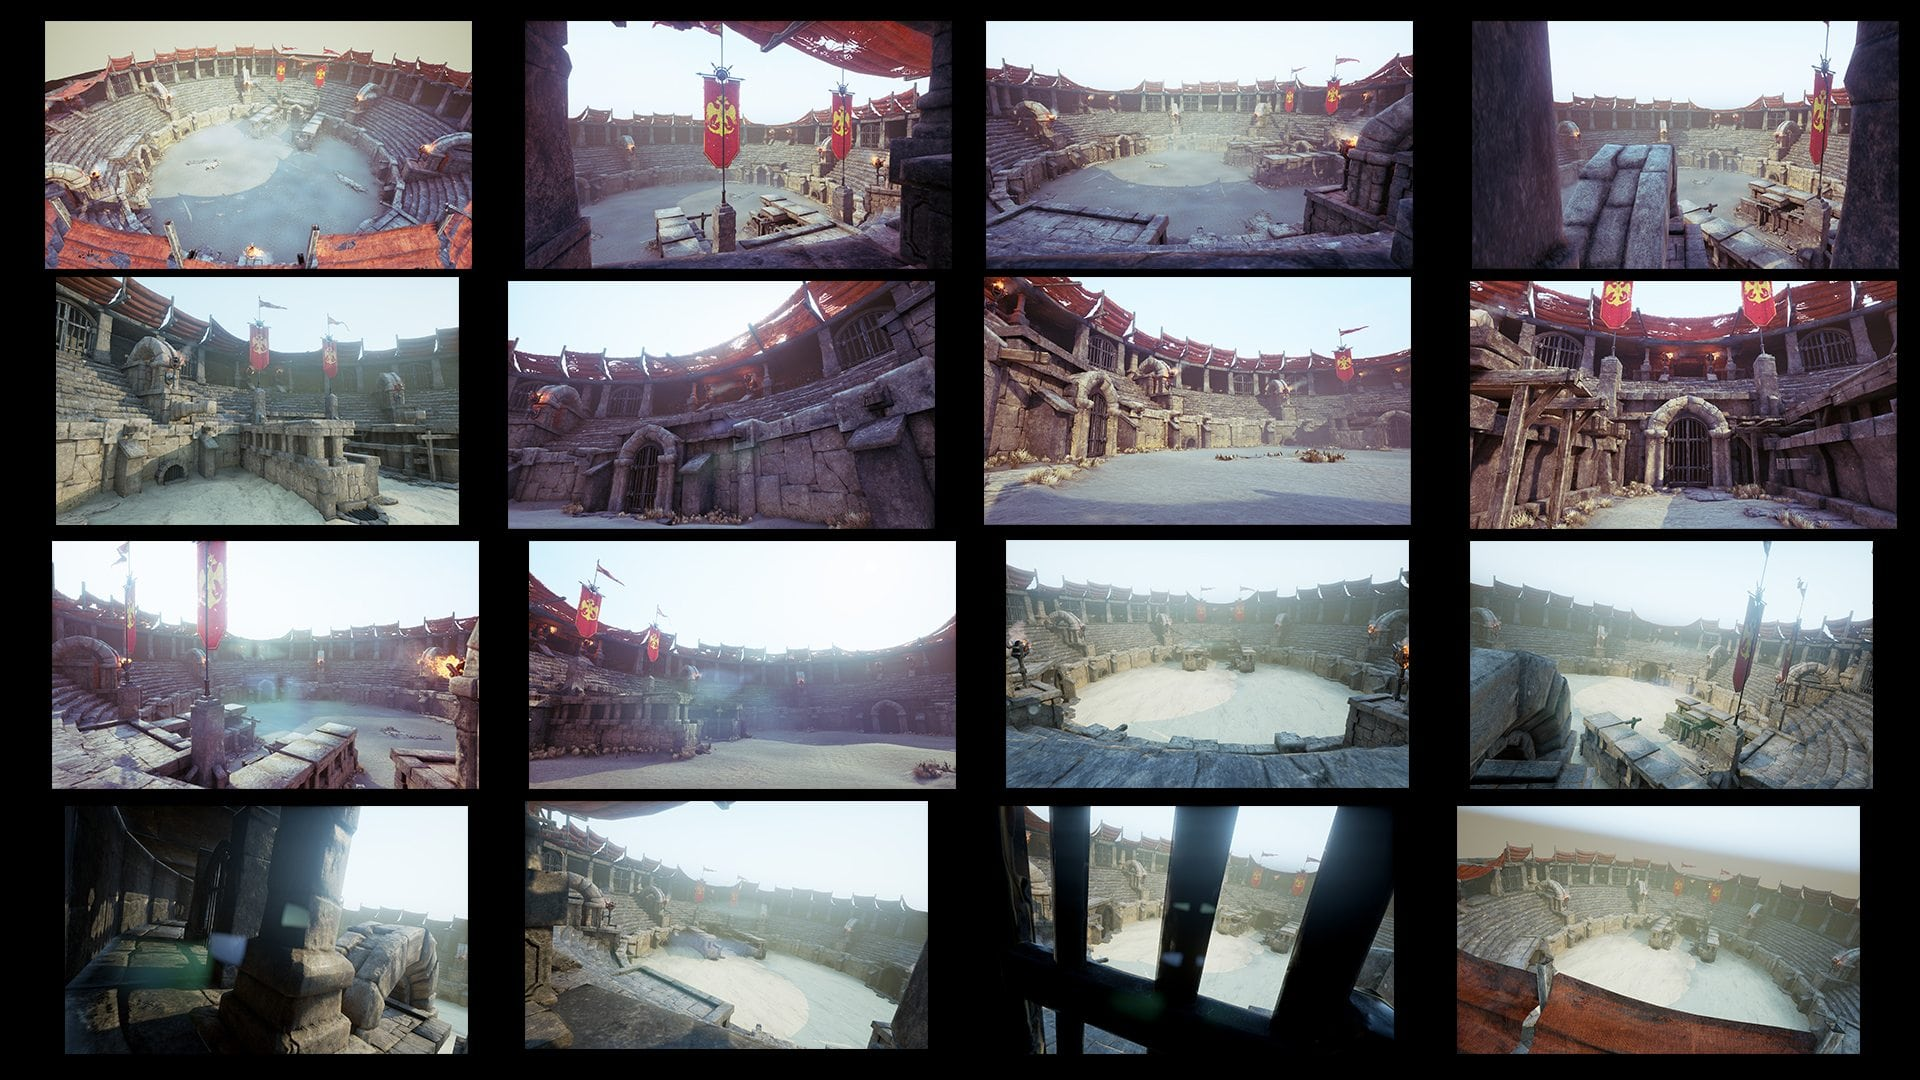 Image 26 - compilation of various camera angles that I thought were interesting